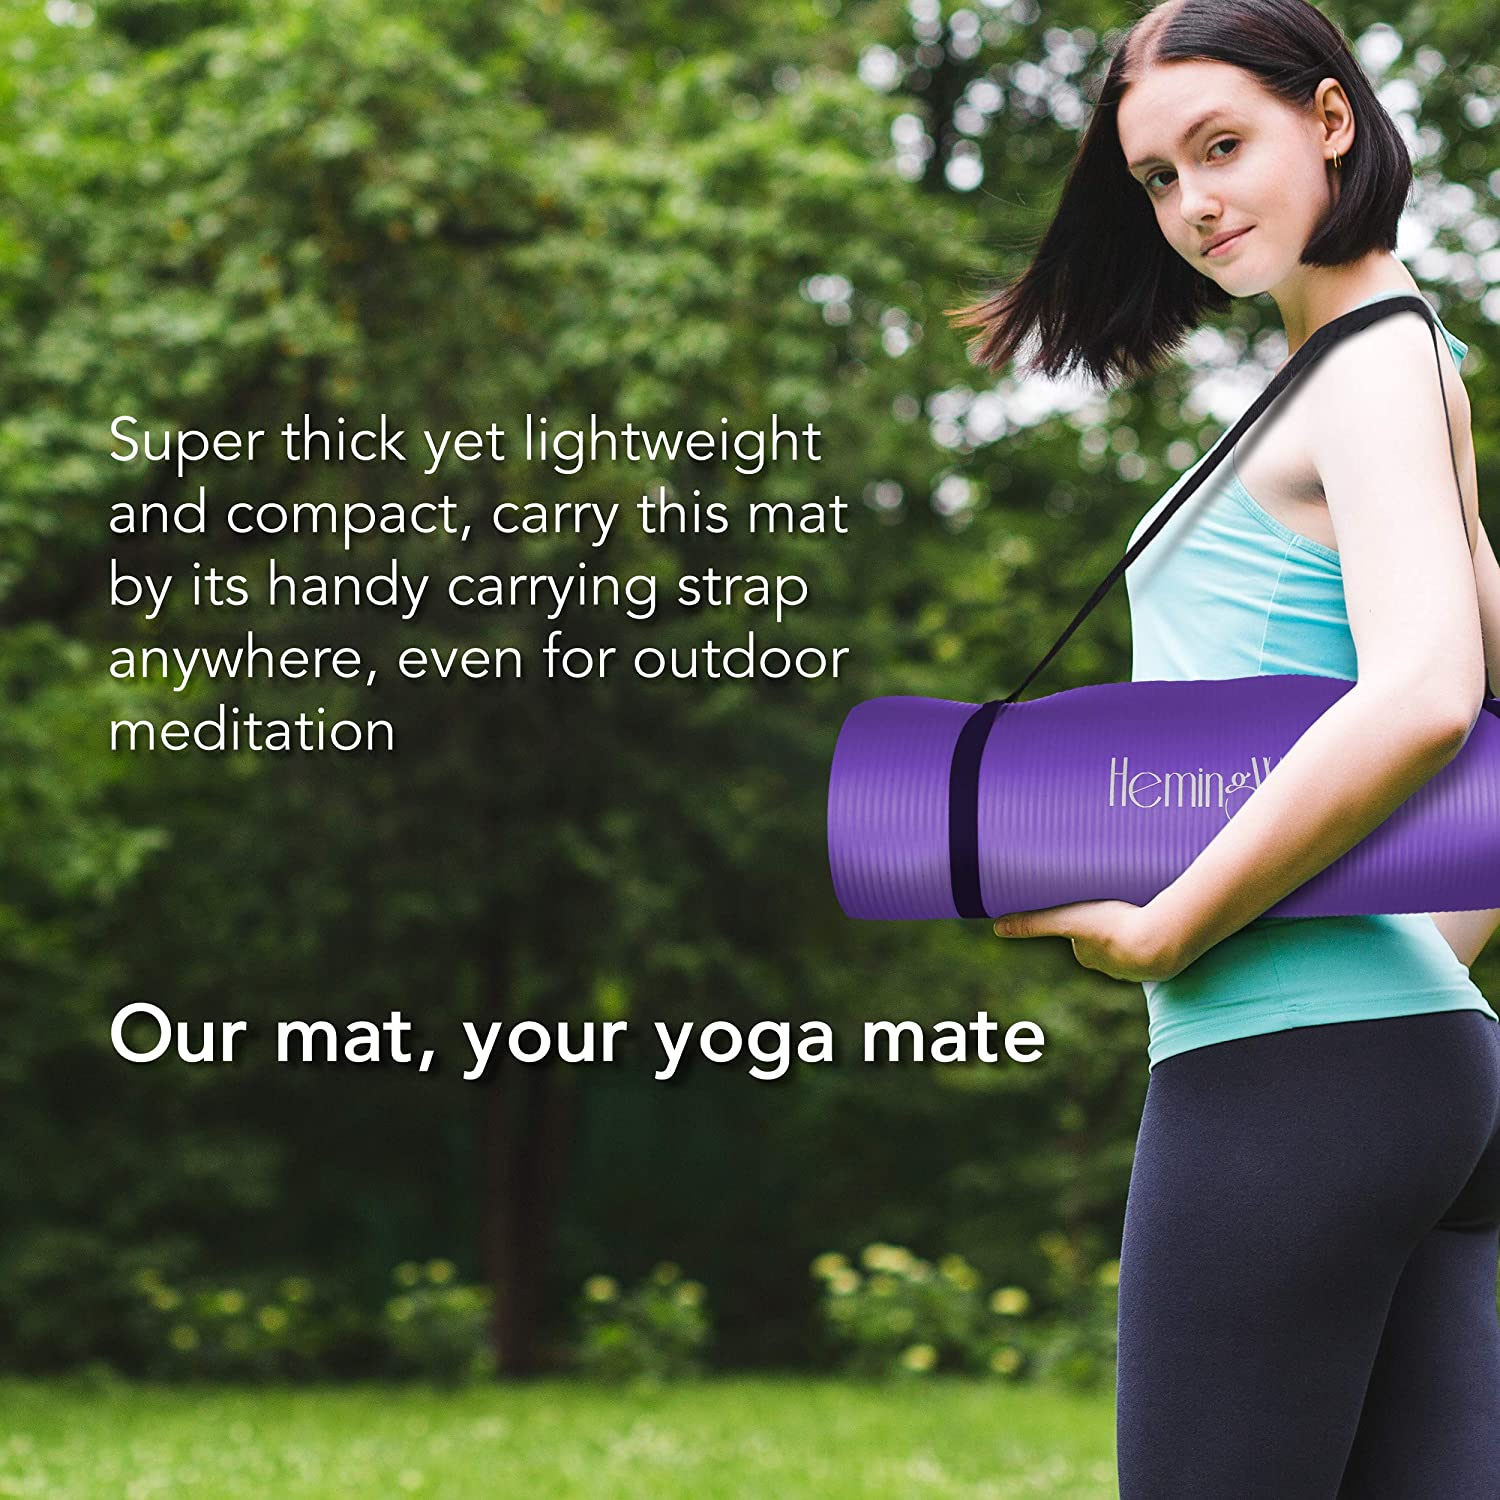 HemingWeigh Extra Thick High Density Exercise Yoga Mat with Carrying Strap for Exercise, Yoga and Pilates (Purple 2 Pack 1/2 Inch) : Sports & Outdoors